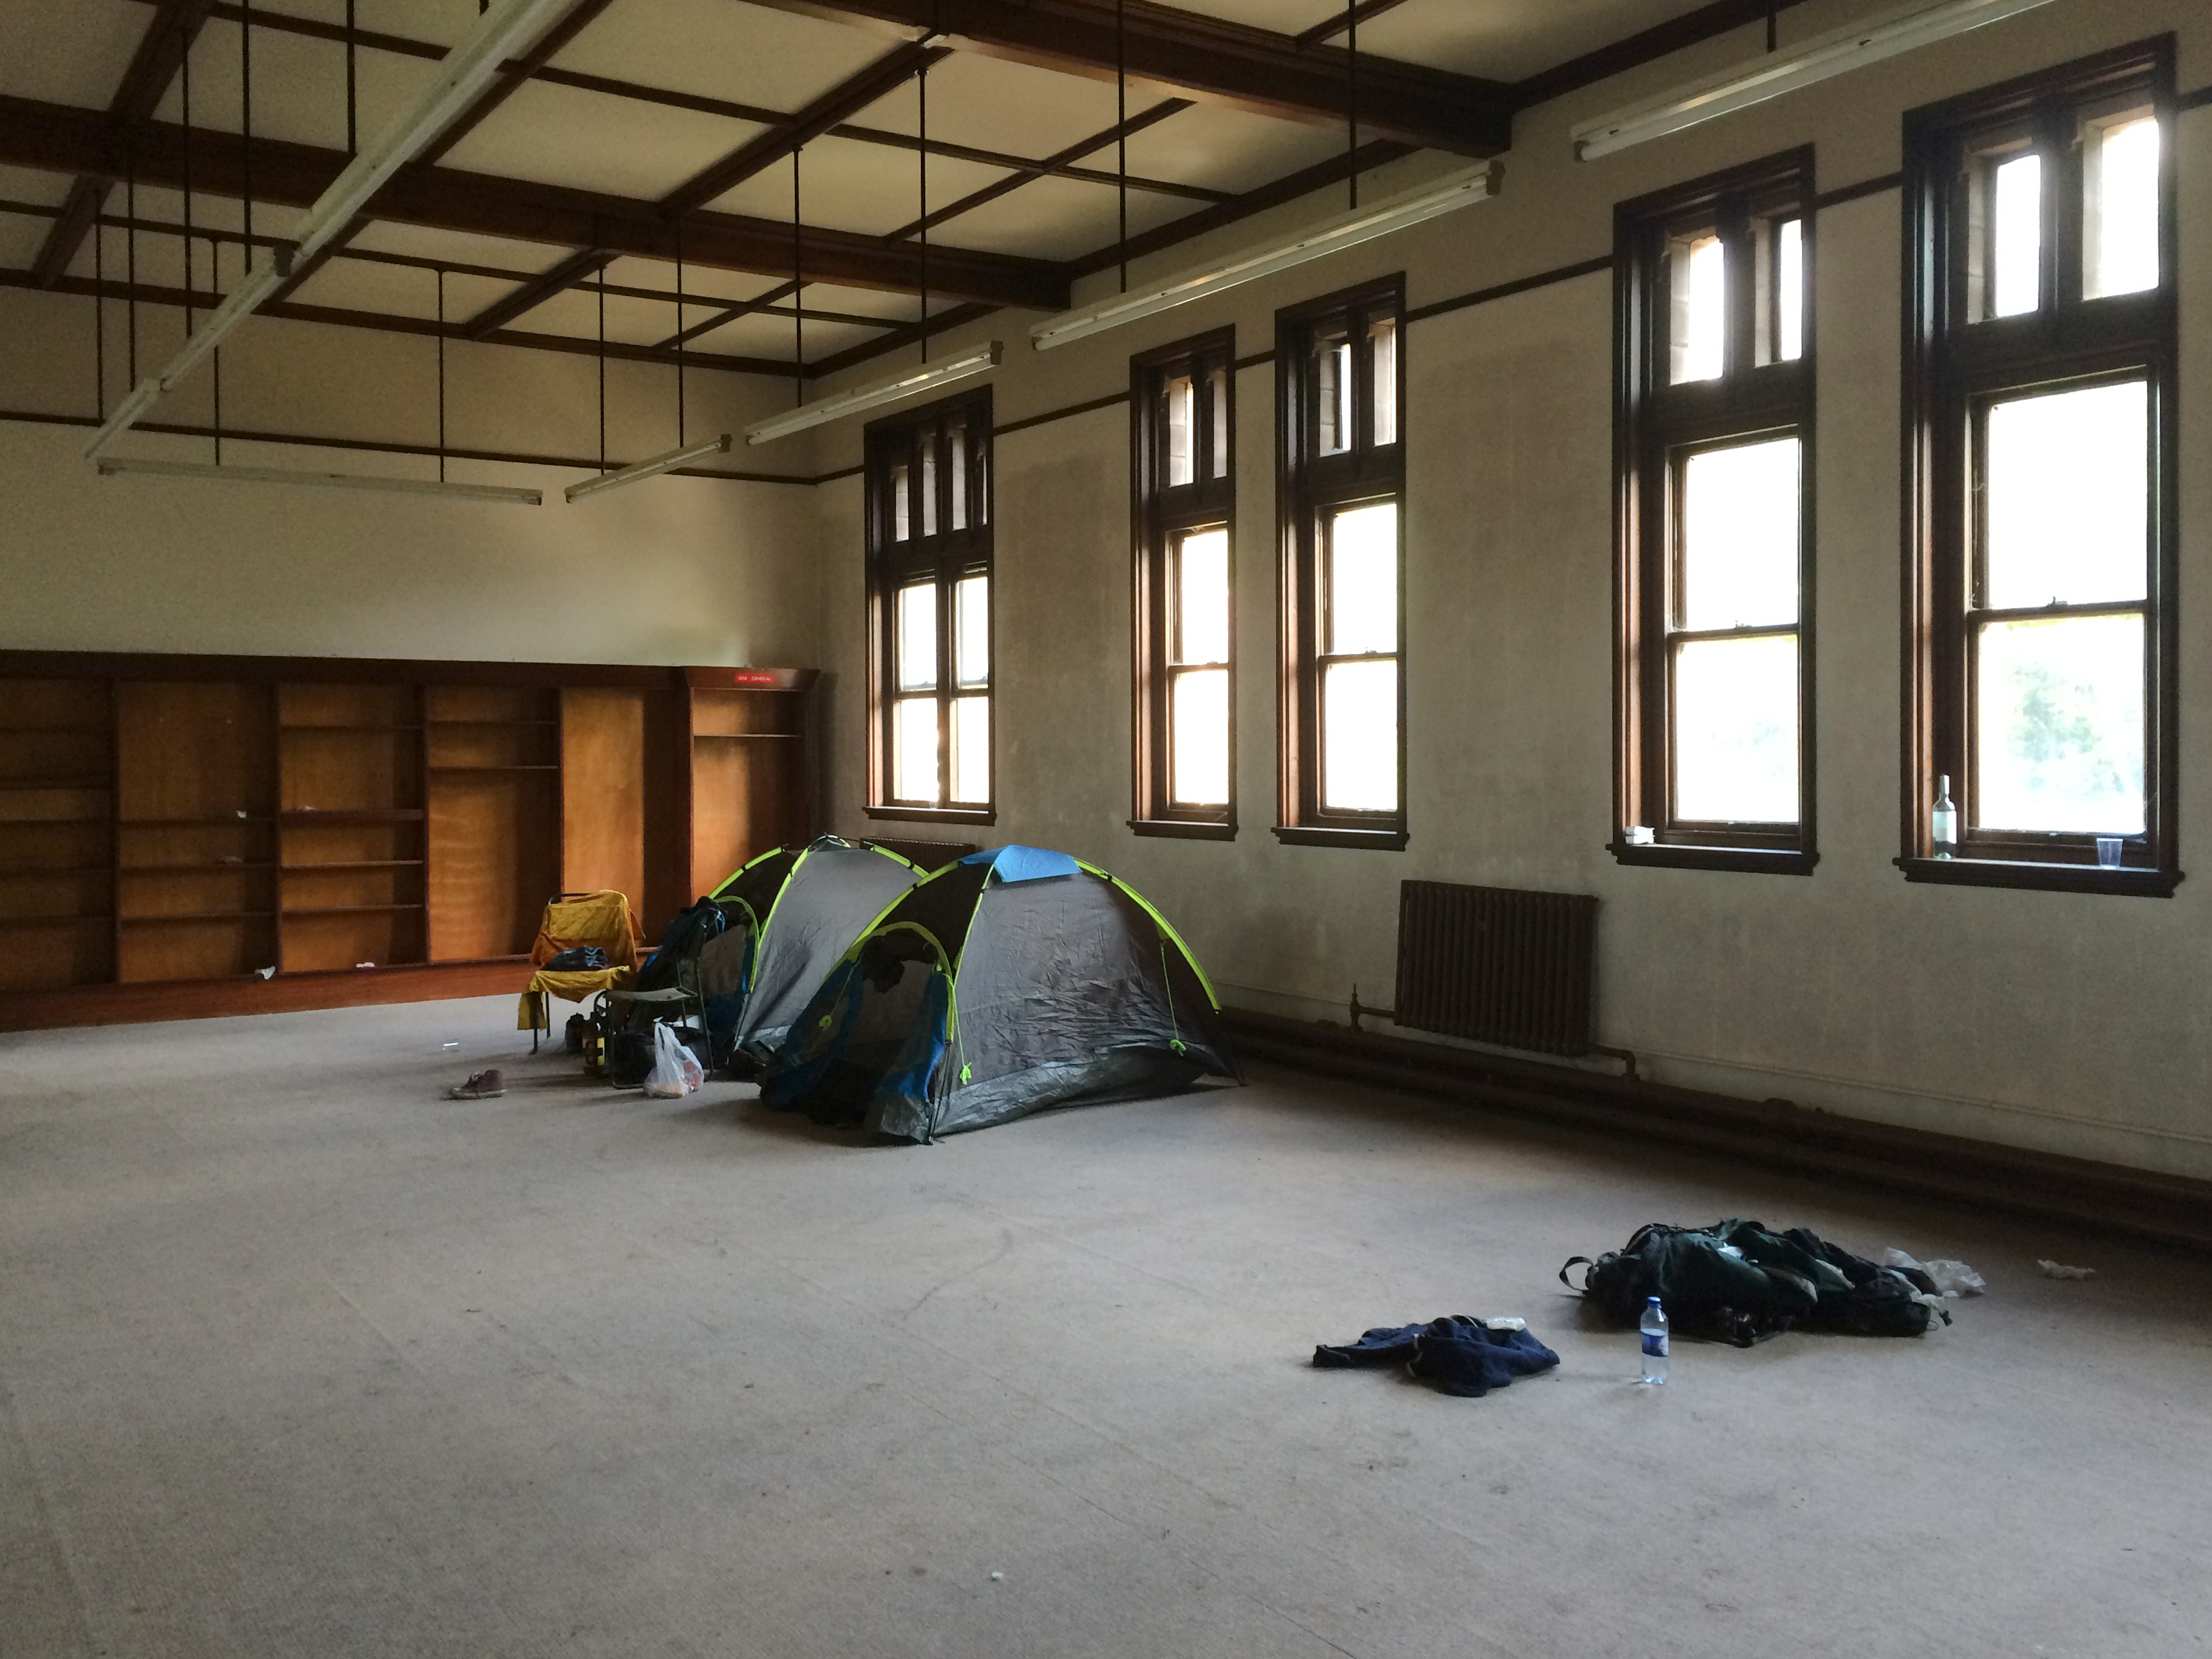 Pro Hobo derp conference Room tents camping St Joseph's Seminary Joe's Upholland Urbex Adam X Urban Exploration 2015 Abandoned decay lost forgotten derelict